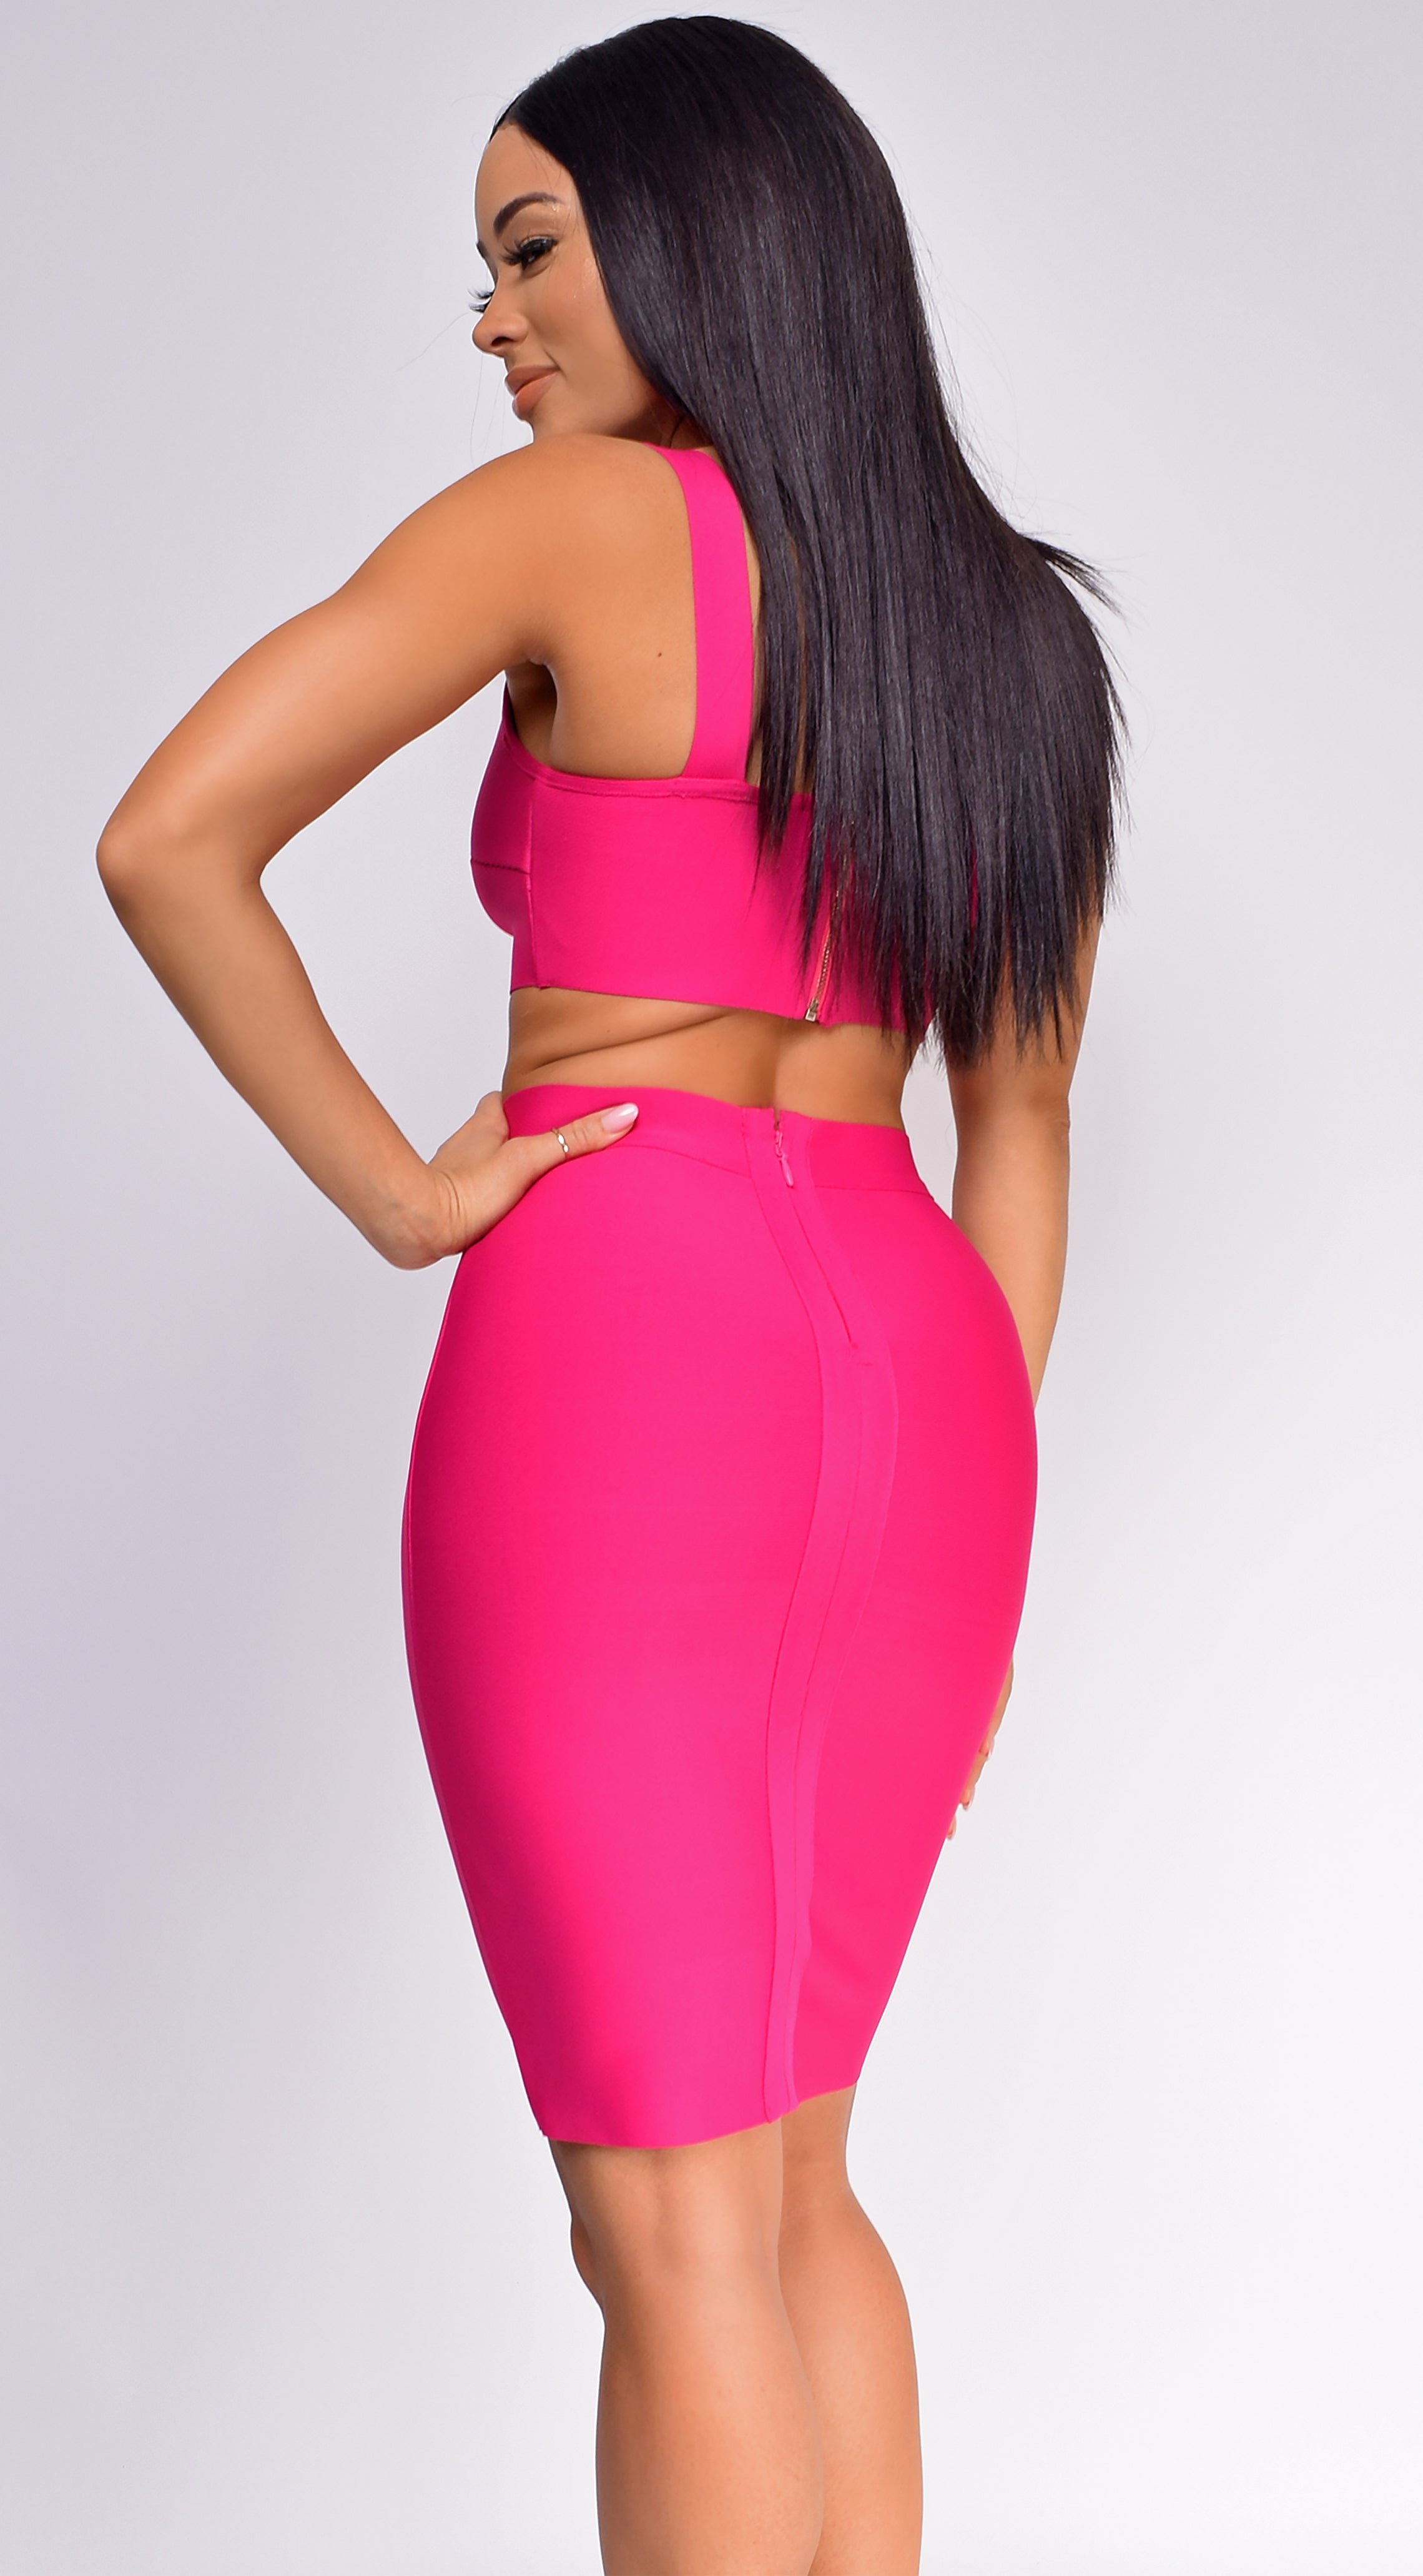 Milly Hot Pink Bandage Top And Skirt Set